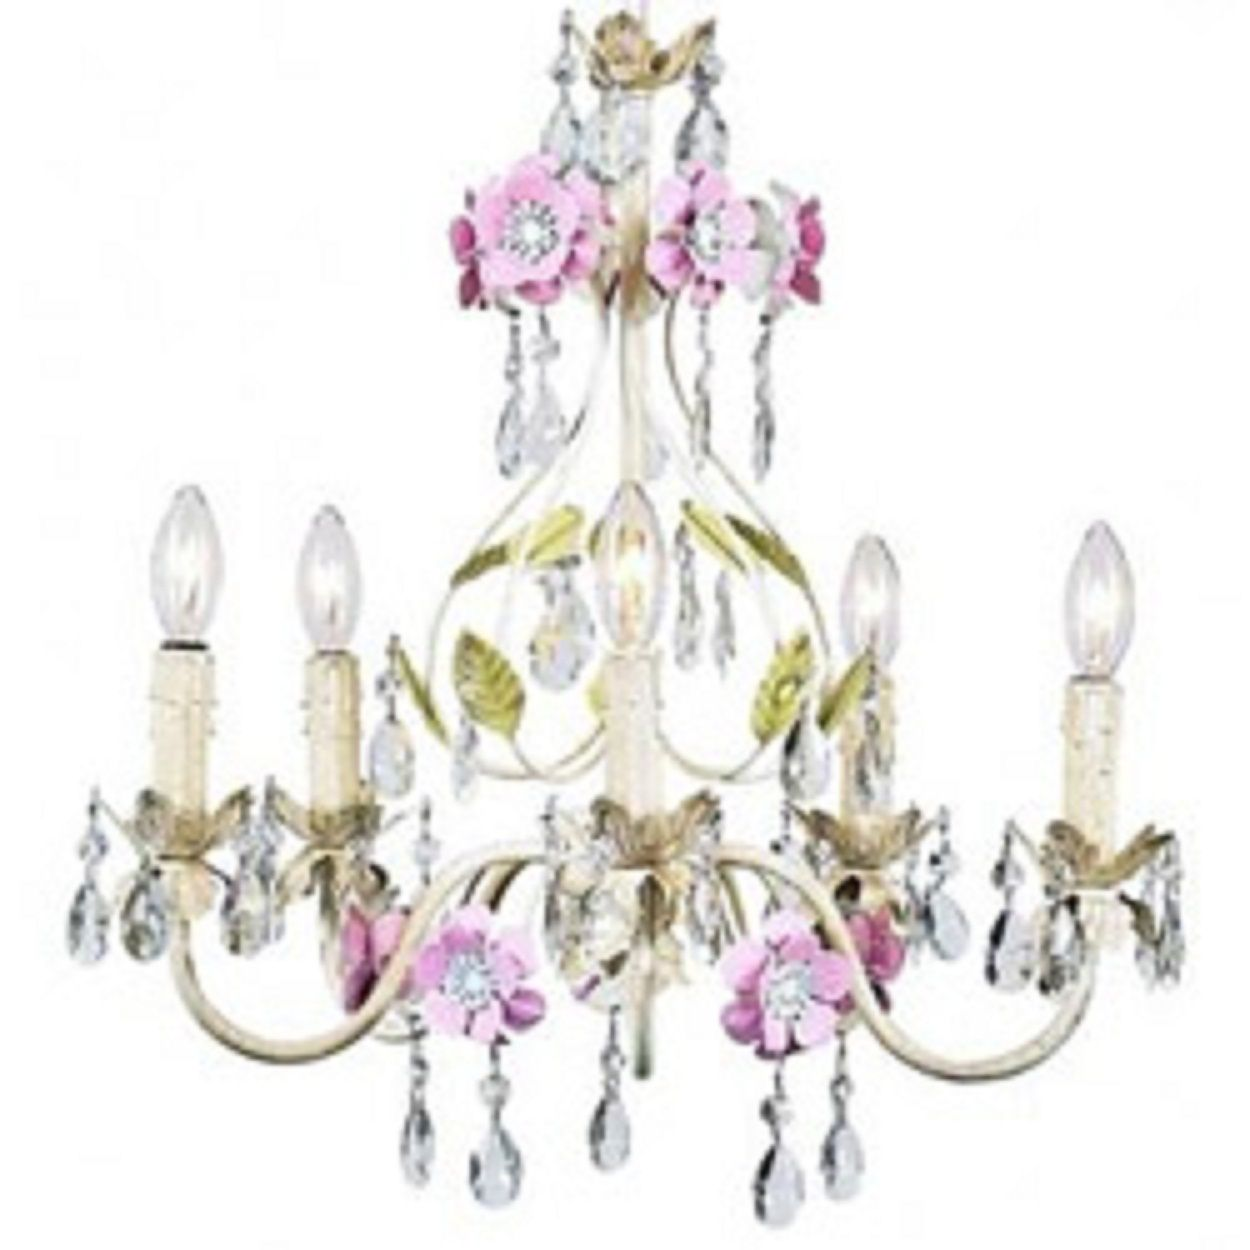 Antique Shabby Chic Chandelier Of Pastel Fl With Dangling Crystals And Be